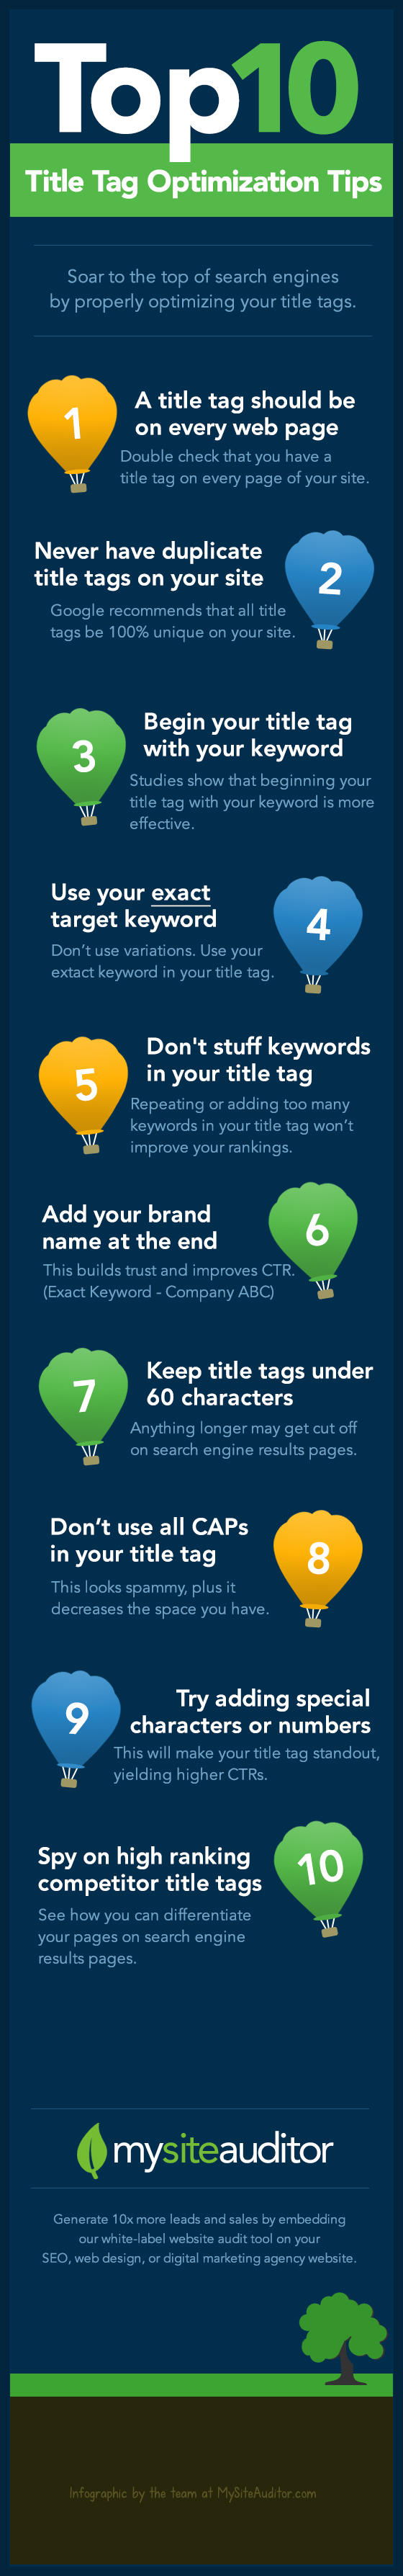 title tag seo tips infographic